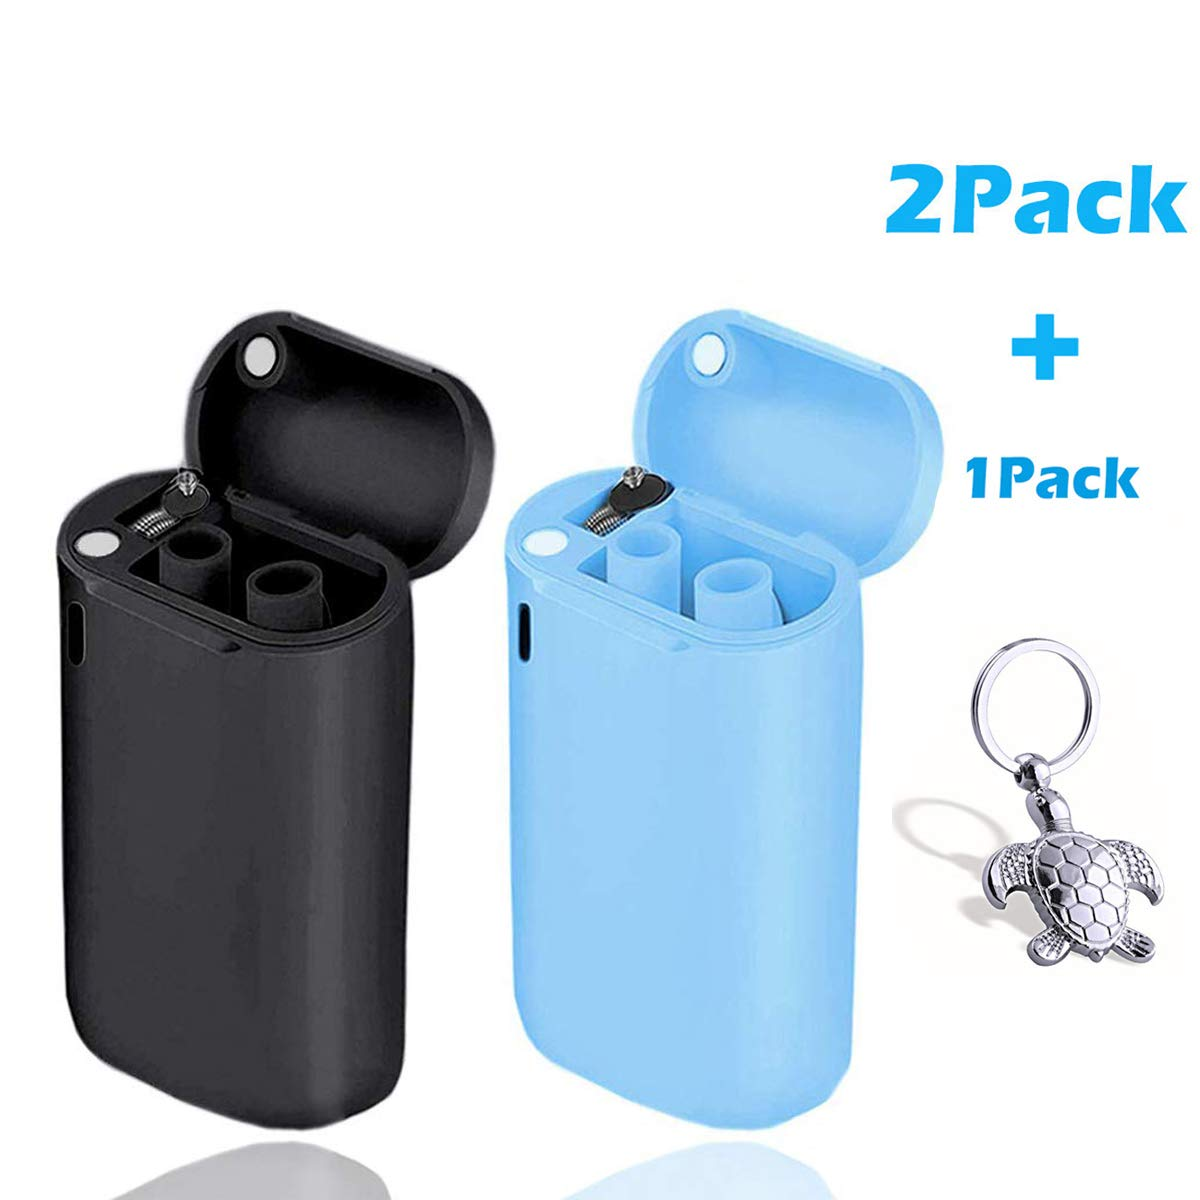 scurry 2 Pack Collapsible Reusable Straw, Composed of Stainless Steel and Food-Grade Silicone, Portable Set with Hard Case Holder and Cleaning Brush, for Party, Travel, Outdoor, etc.(Blue&Black) by scurry